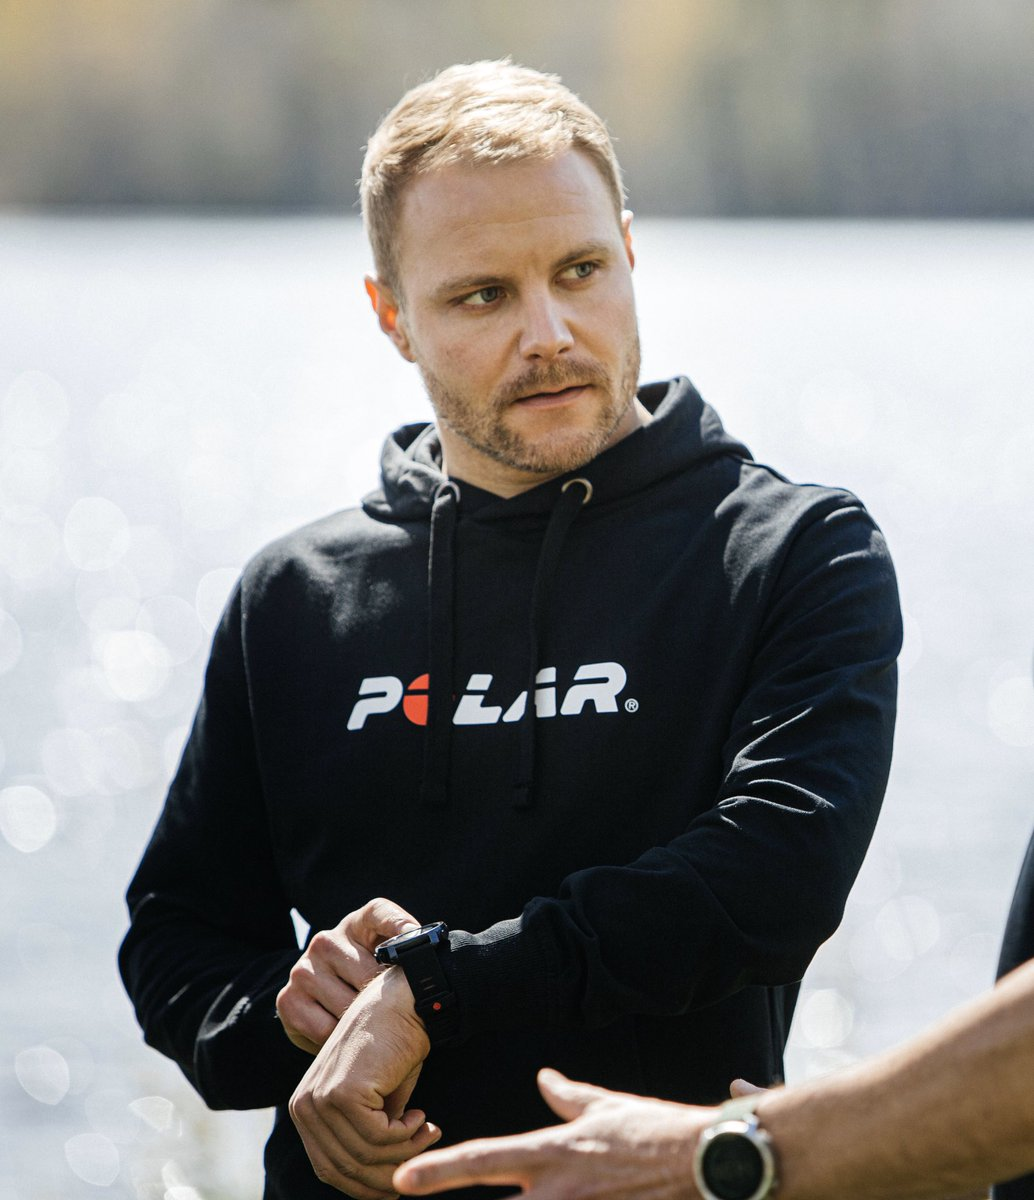 Proud to be part of the @PolarGlobal family!   Read more here: https://t.co/OJQfoitQLM  #VB77 #PolarAthlete #powerthroughanything https://t.co/5NipBlf3uK